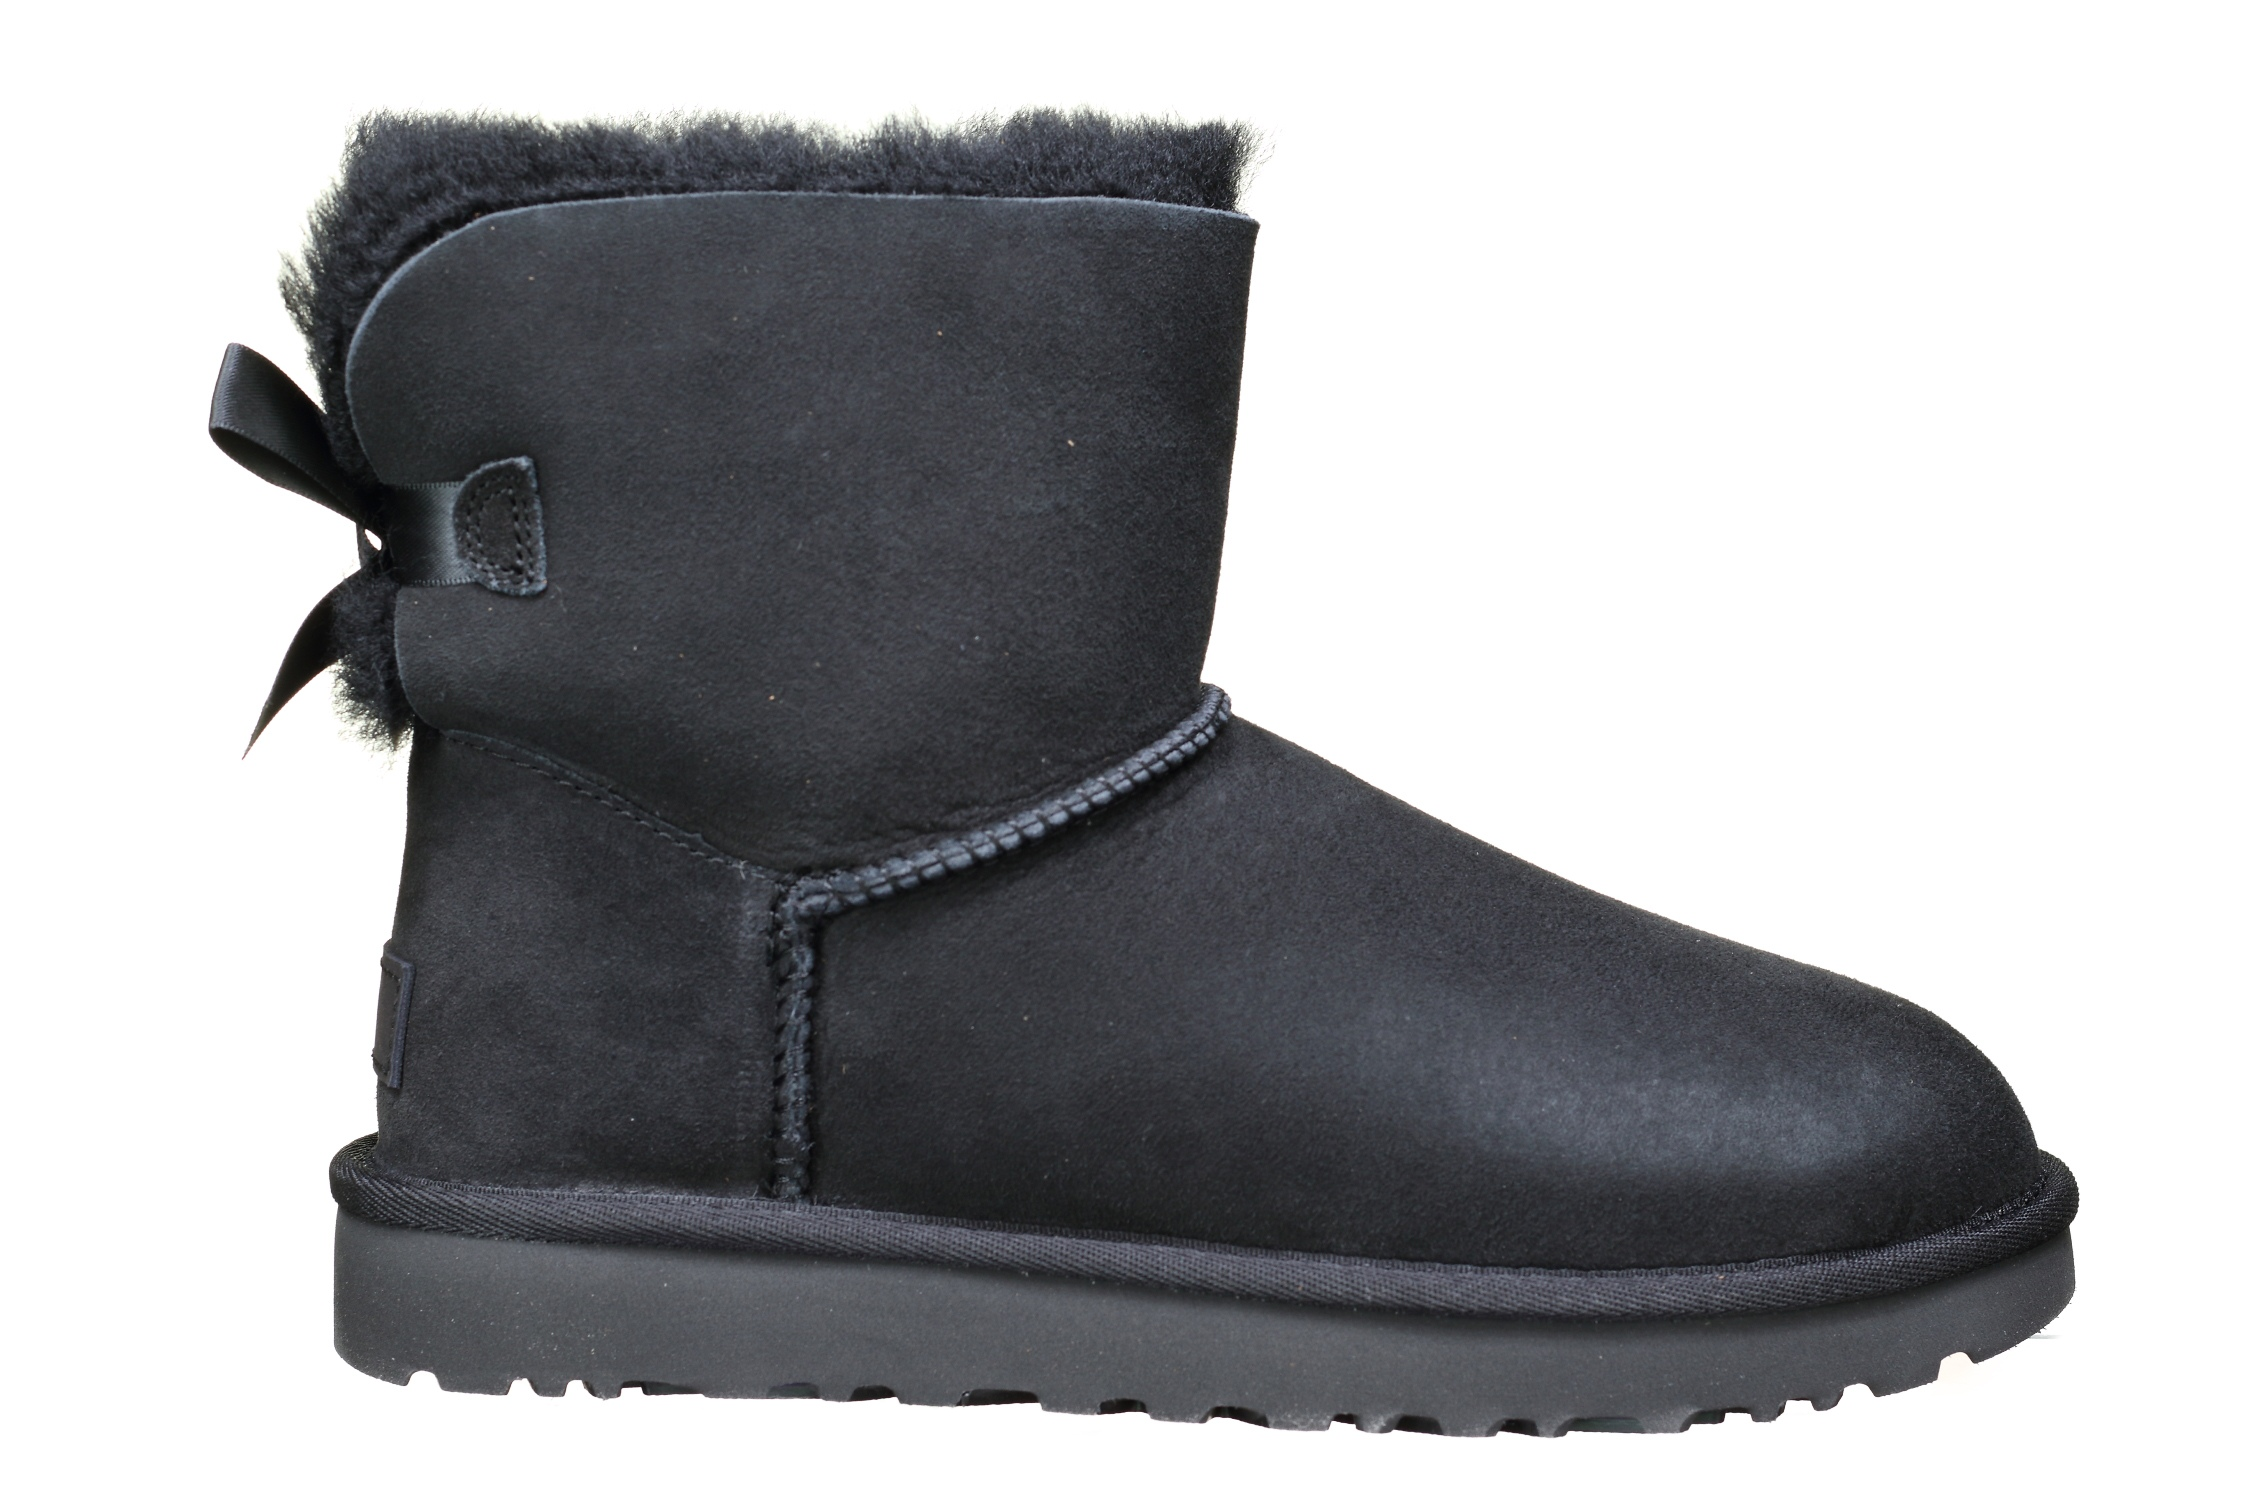 http://www.leadermode.com/181185/ugg-w-mini-bailey-bow-2-1016501-w-black.jpg